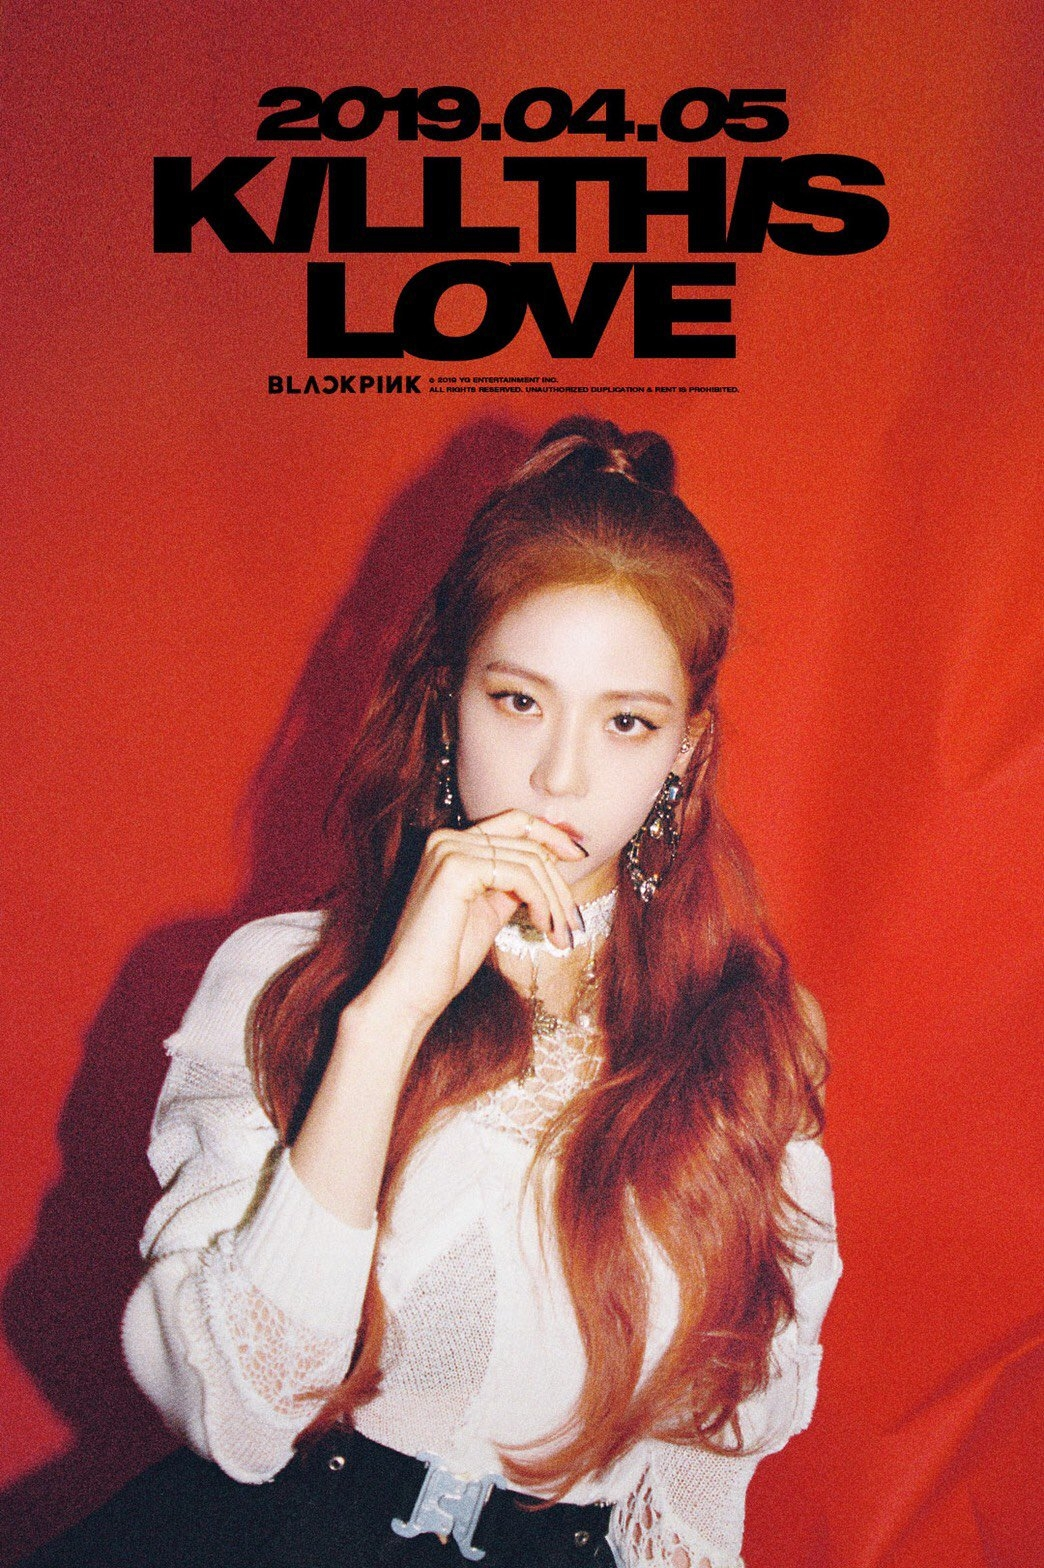 jisoo kil this love